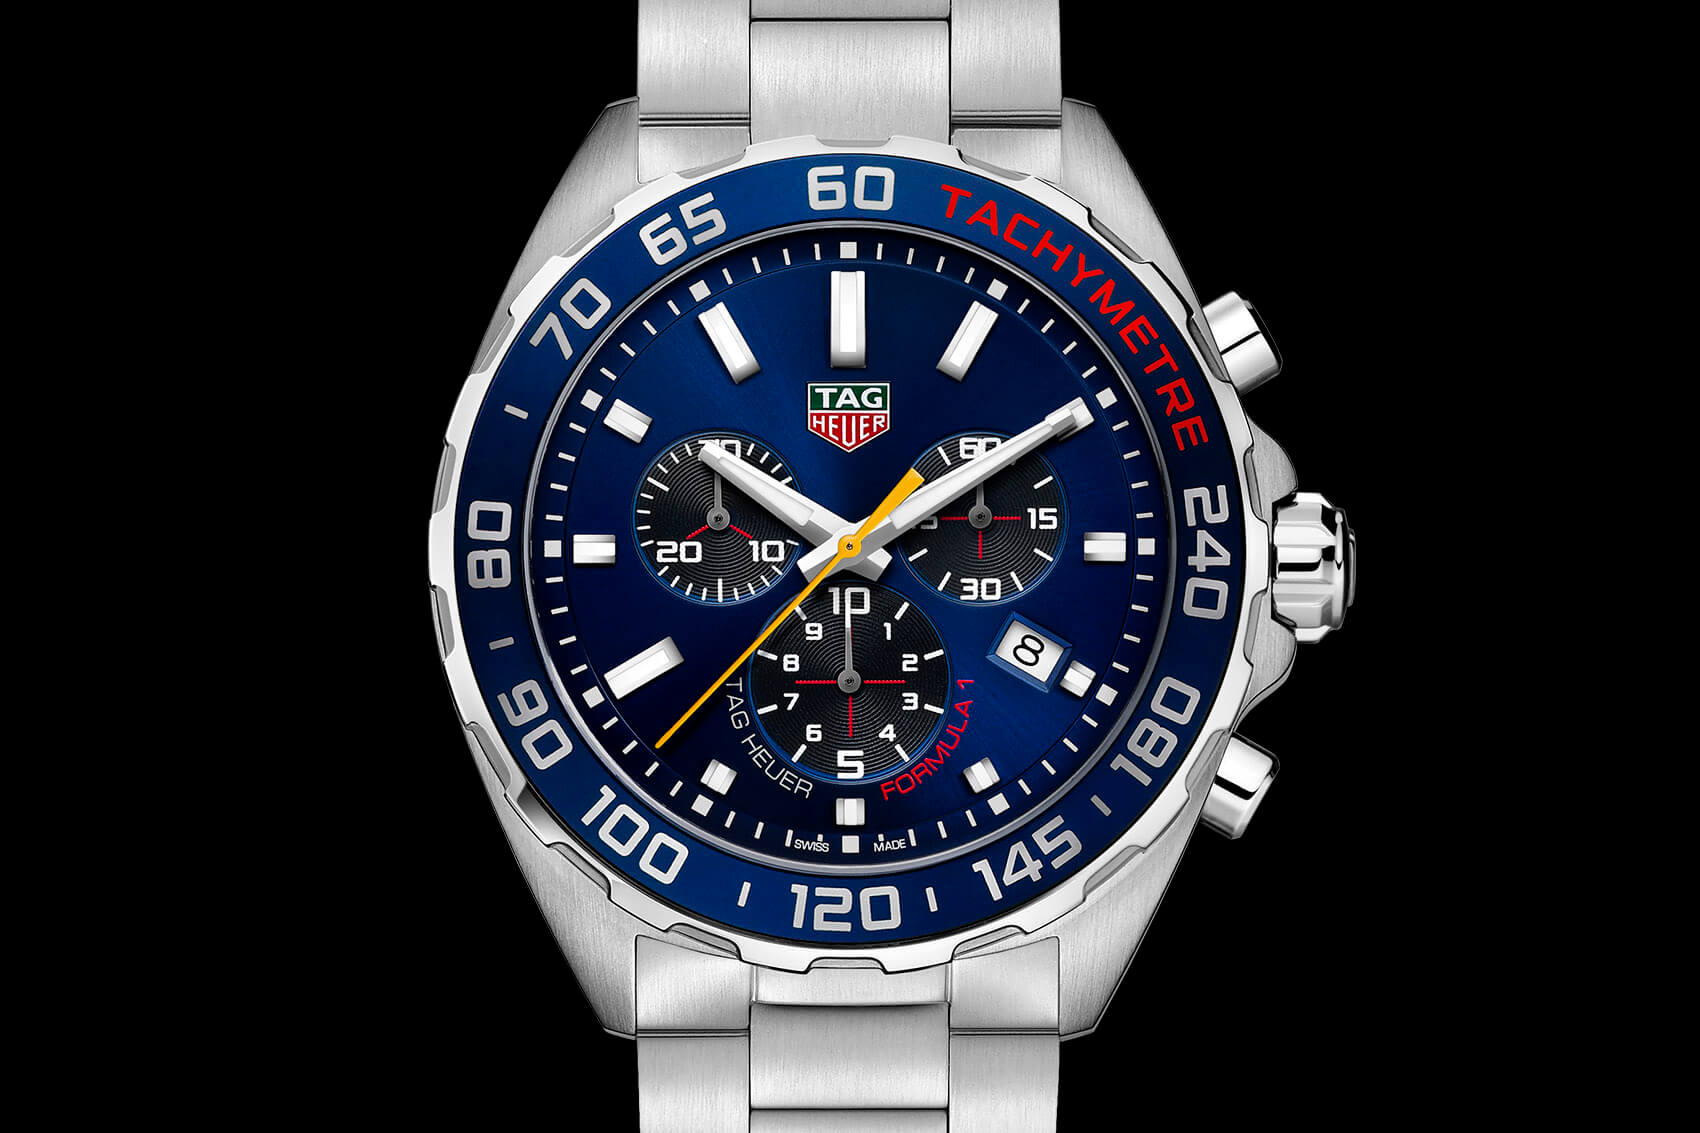 Tag Heuer Formula 1 Aston Martin Red Bull Racing Special Edition 2020 portada